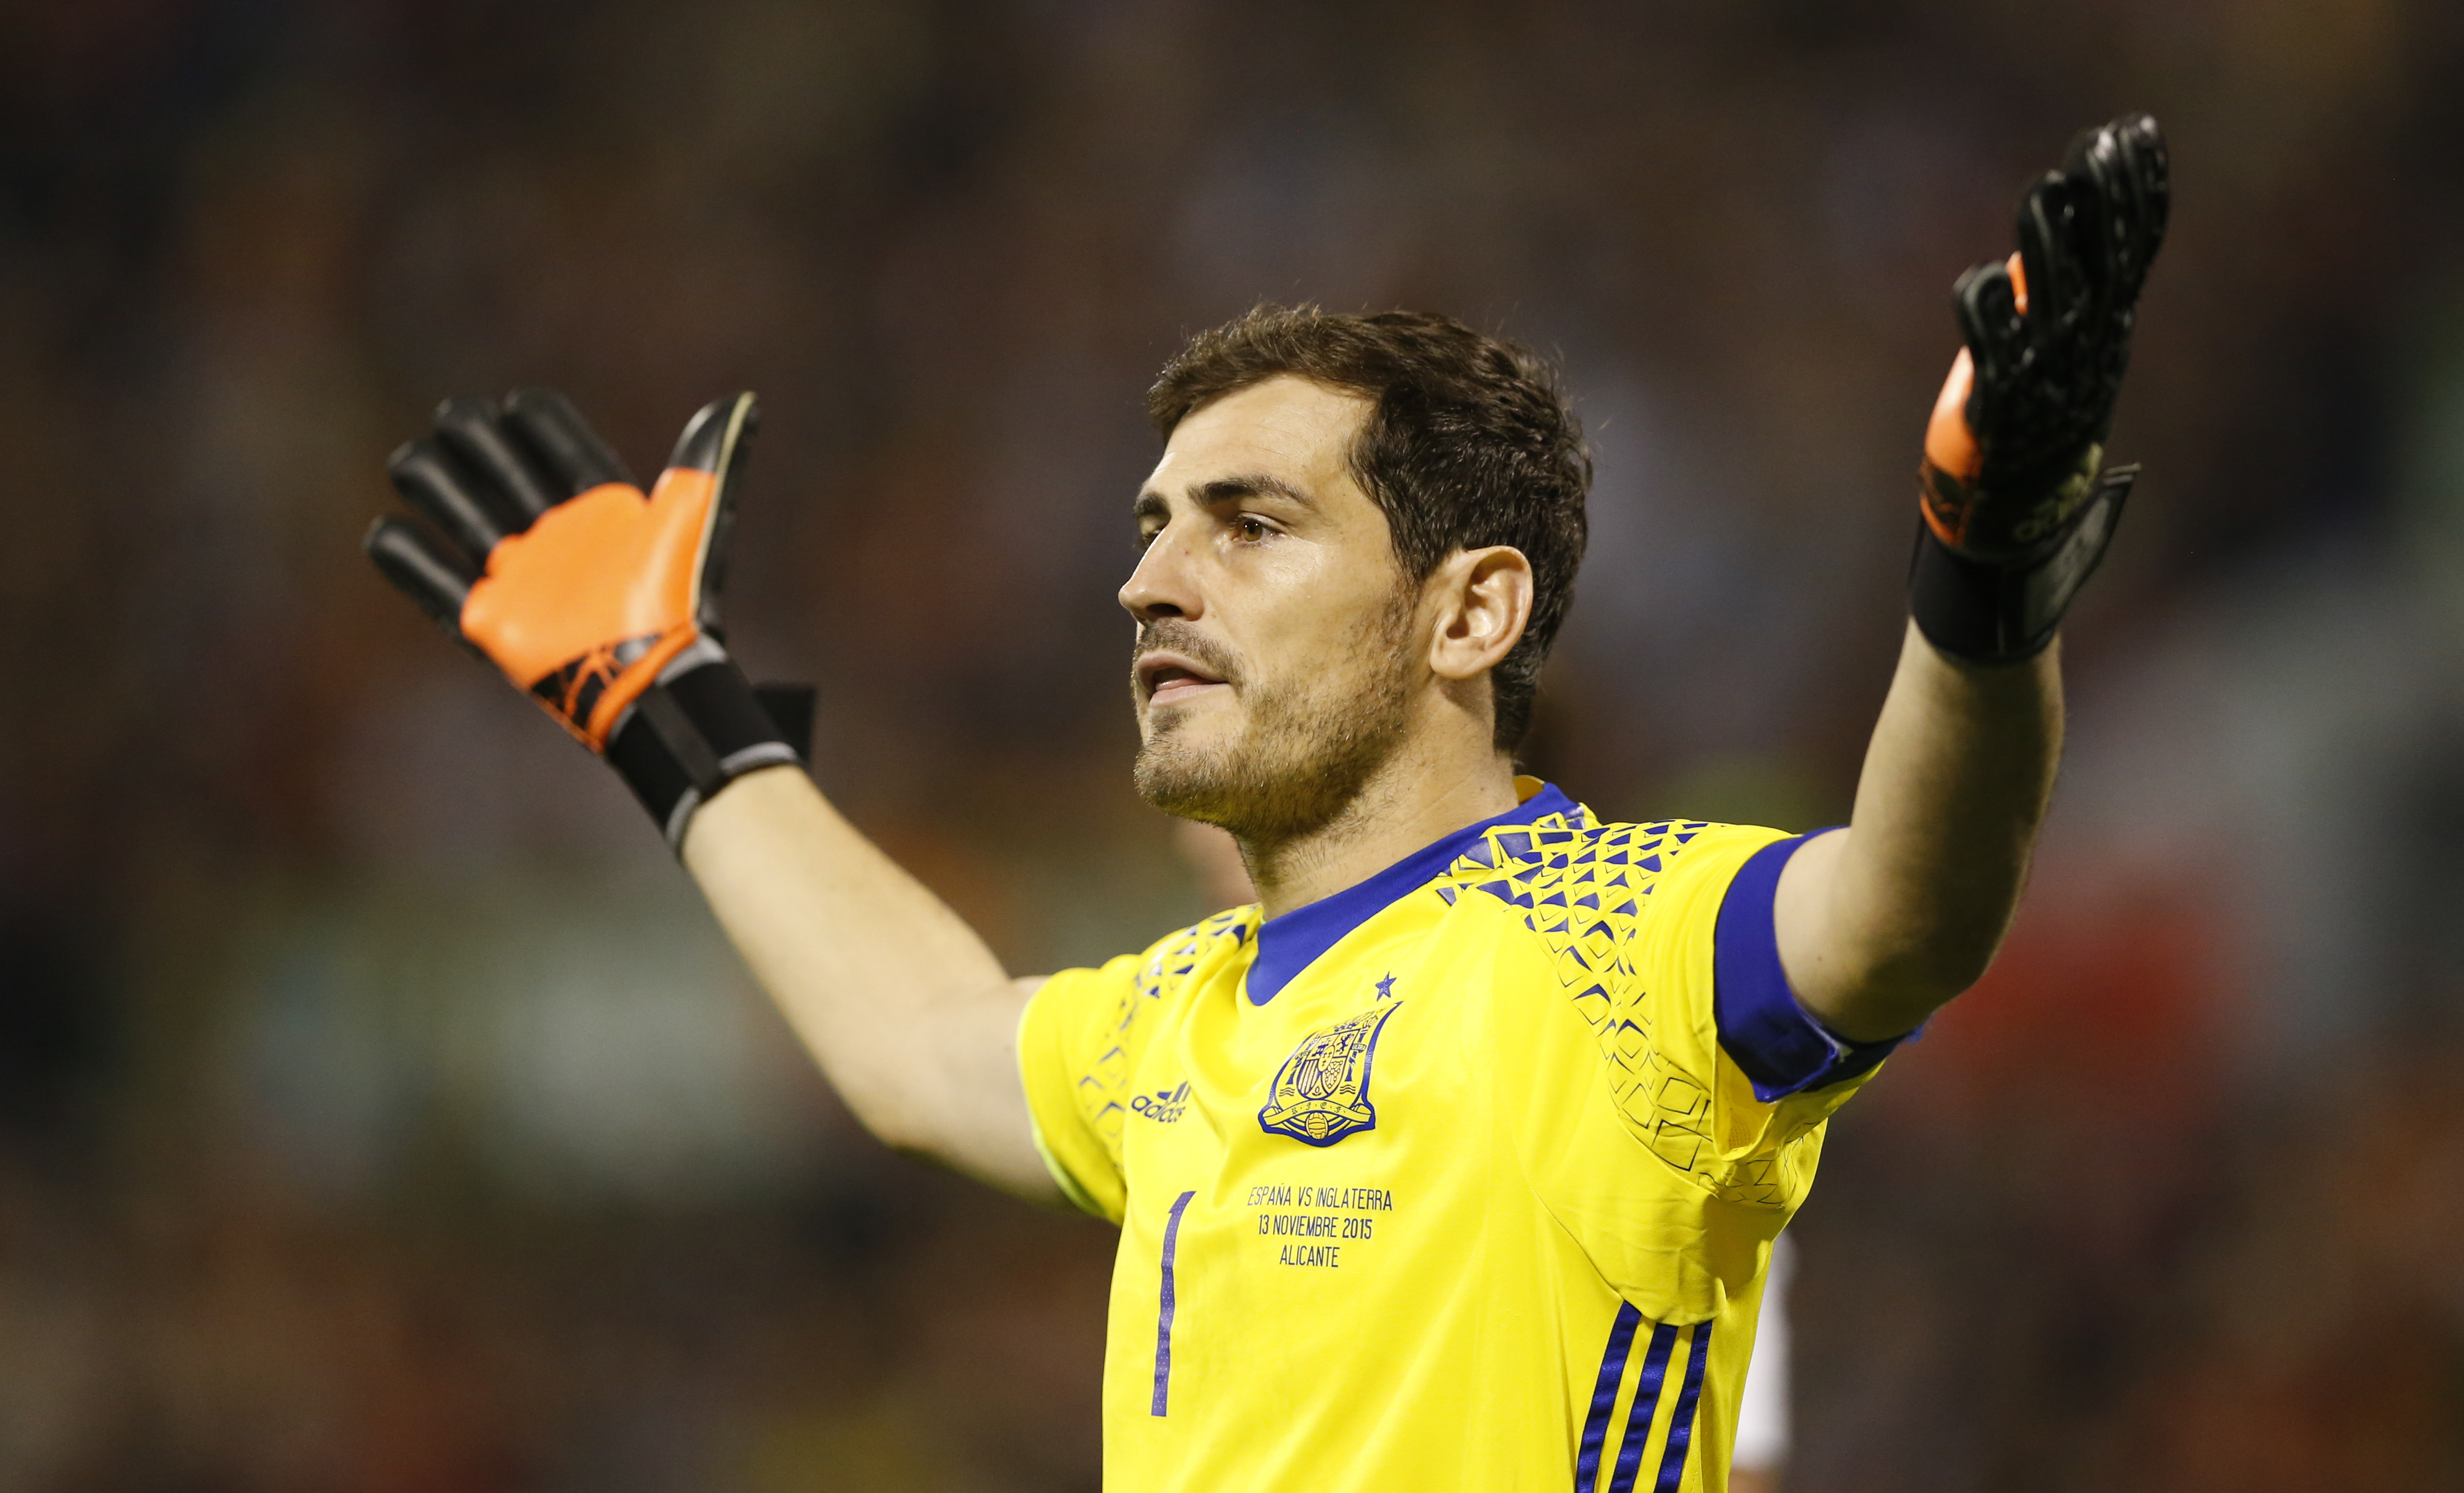 Football - Spain v England - International Friendly - Jose Rico Perez Stadium, Alicante, Spain - 13/11/15nSpain's Iker CasillasnAction Images via Reuters / Carl RecinenLivepicnEDITORIAL USE ONLY.